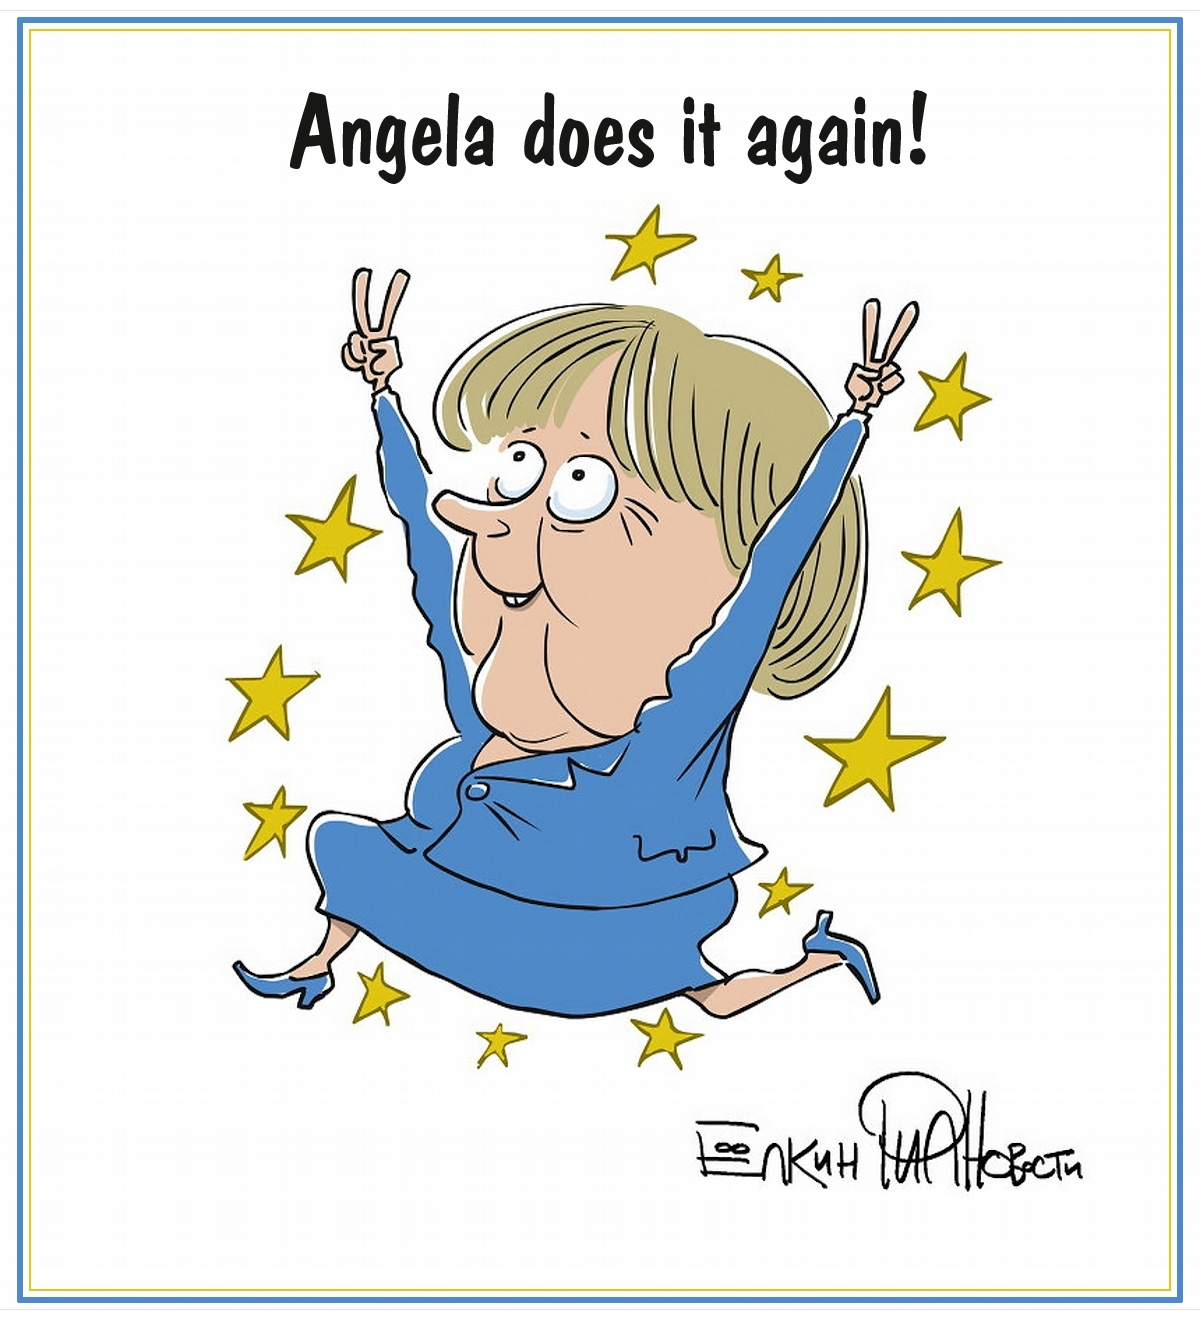 00 Sergei Yolkin. Sing Out, Europe, Angela Held On to Power! 2013